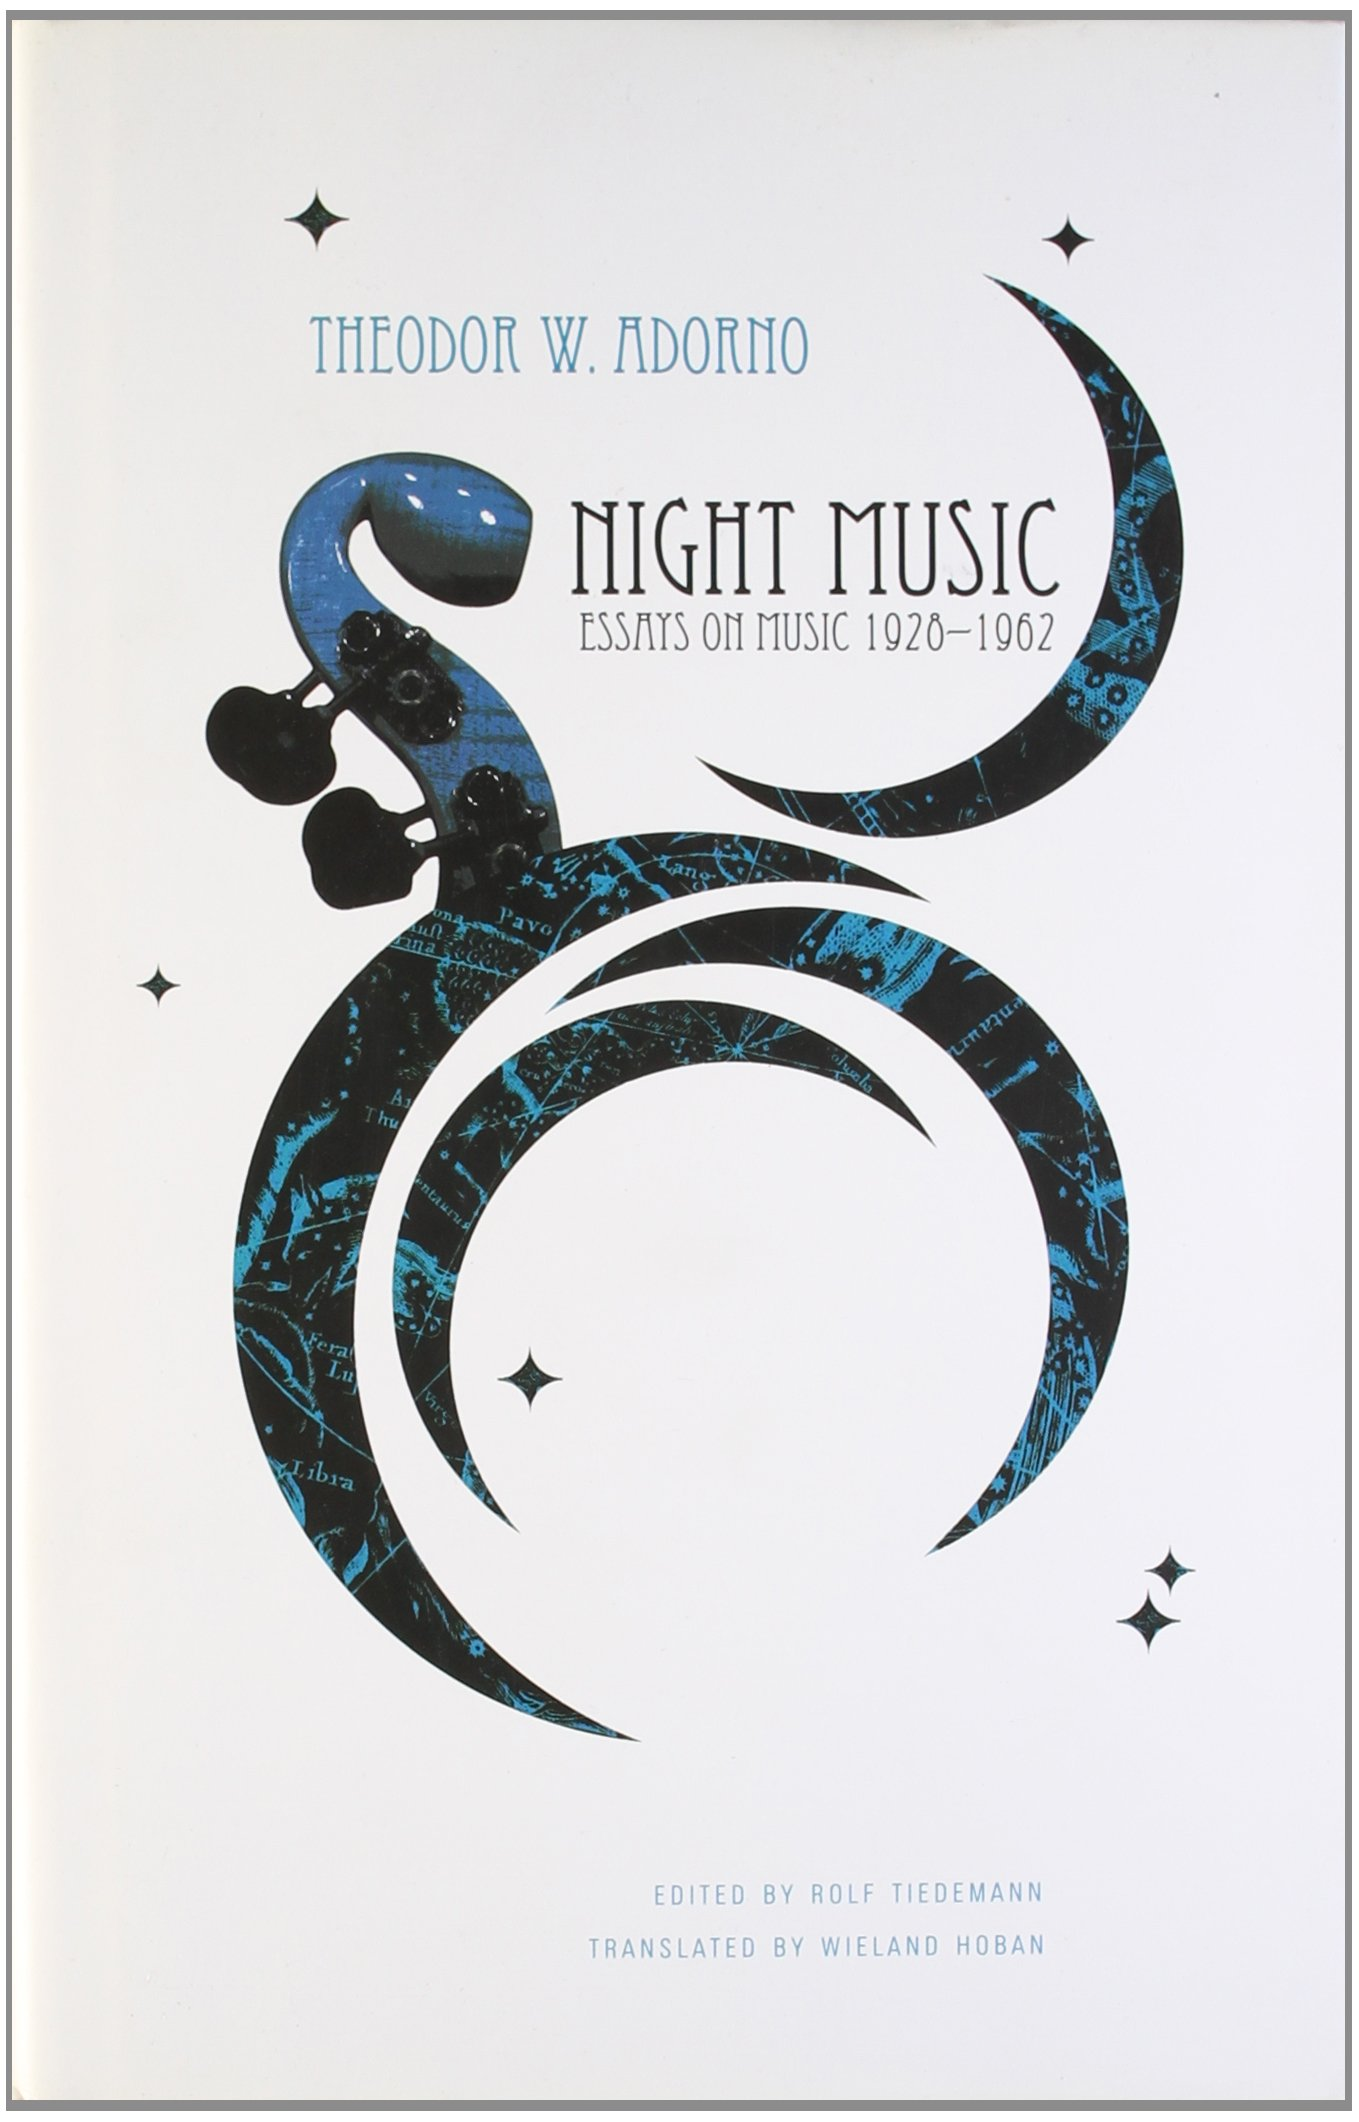 night music essays on music the german list theodor  night music essays on music 1928 1962 the german list theodor w adorno wieland hoban 9781906497217 amazon com books